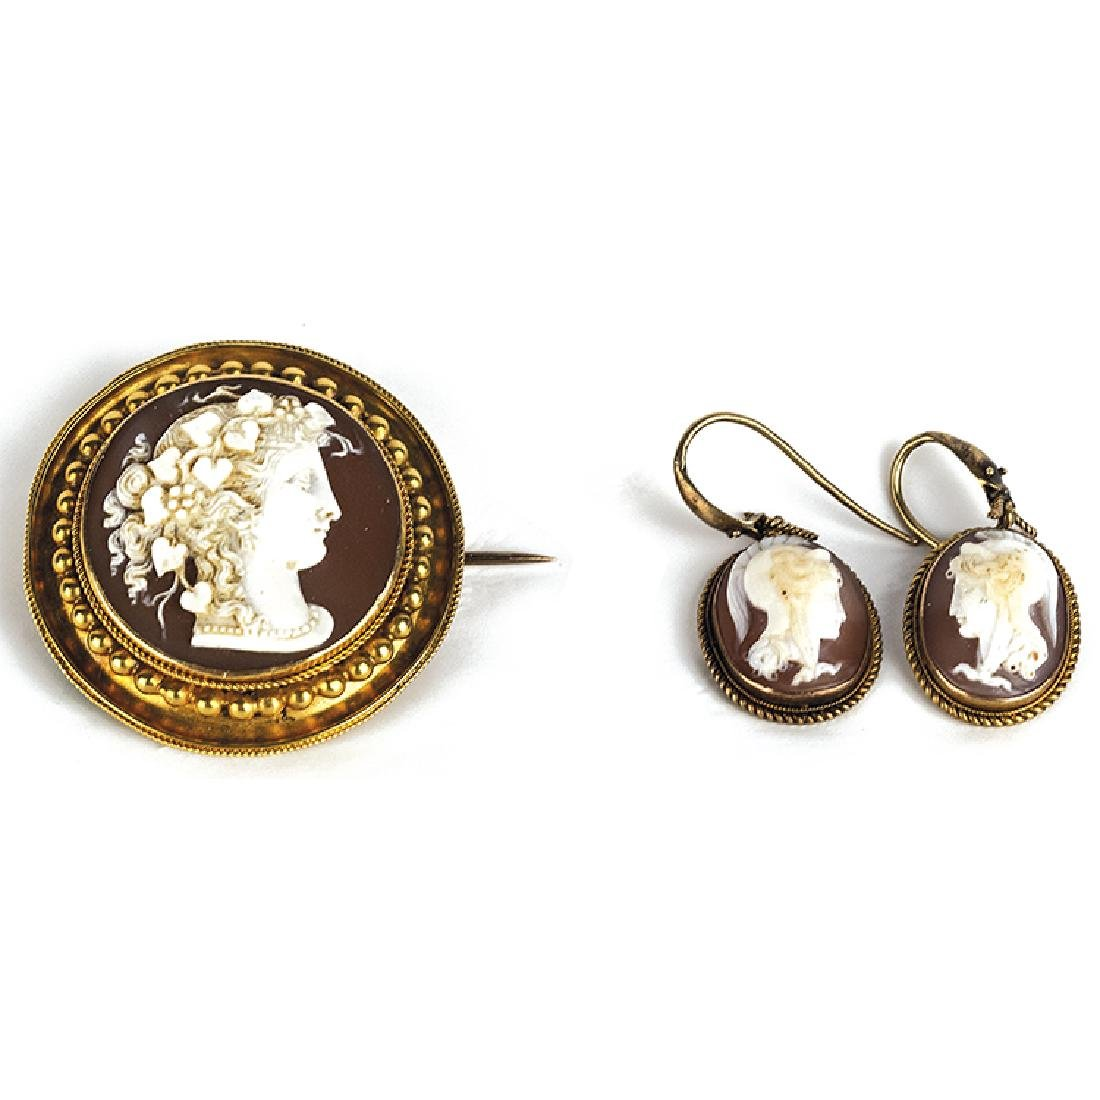 Brooch and earrings with cameos